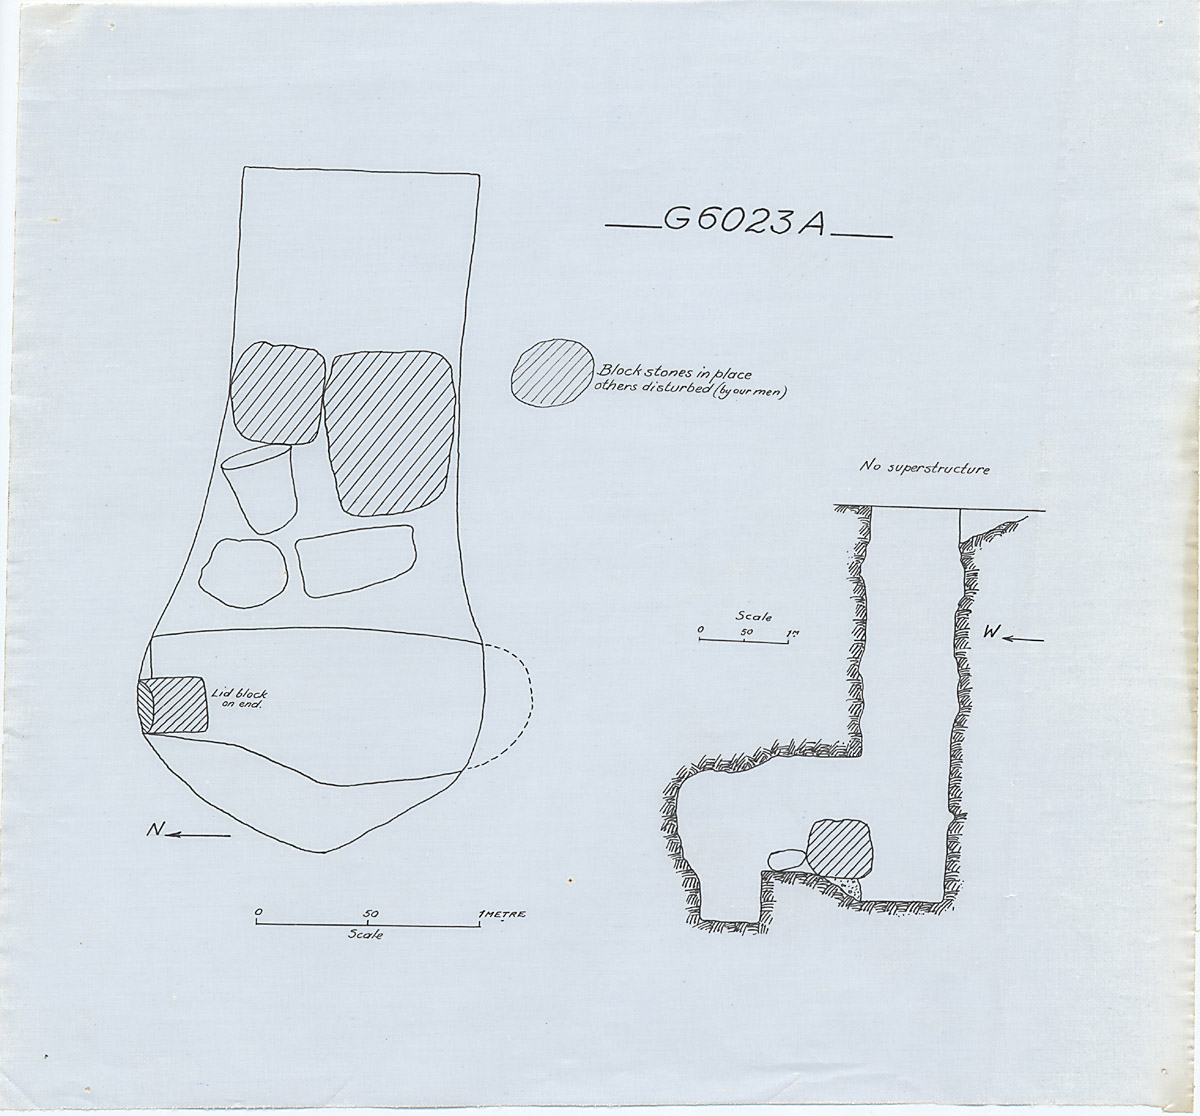 Maps and plans: G 6023, Shaft A